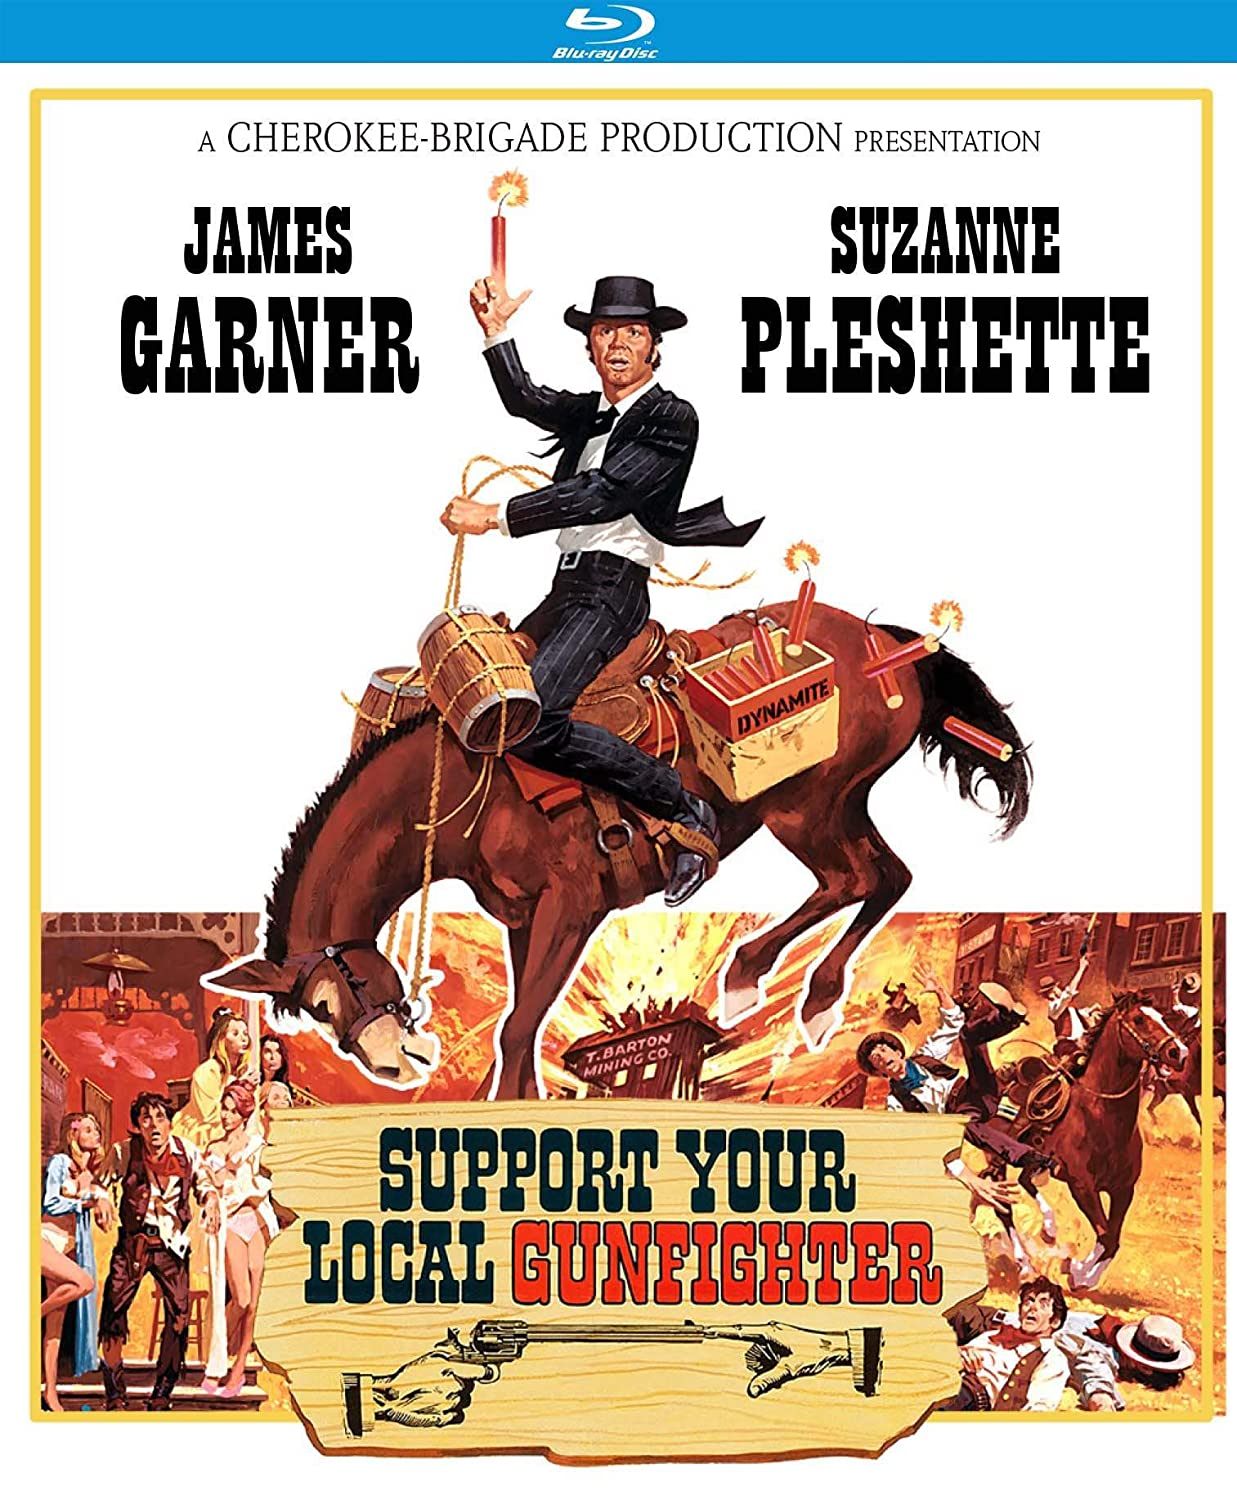 Support Your Branded goods Outlet SALE Local Gunfighter